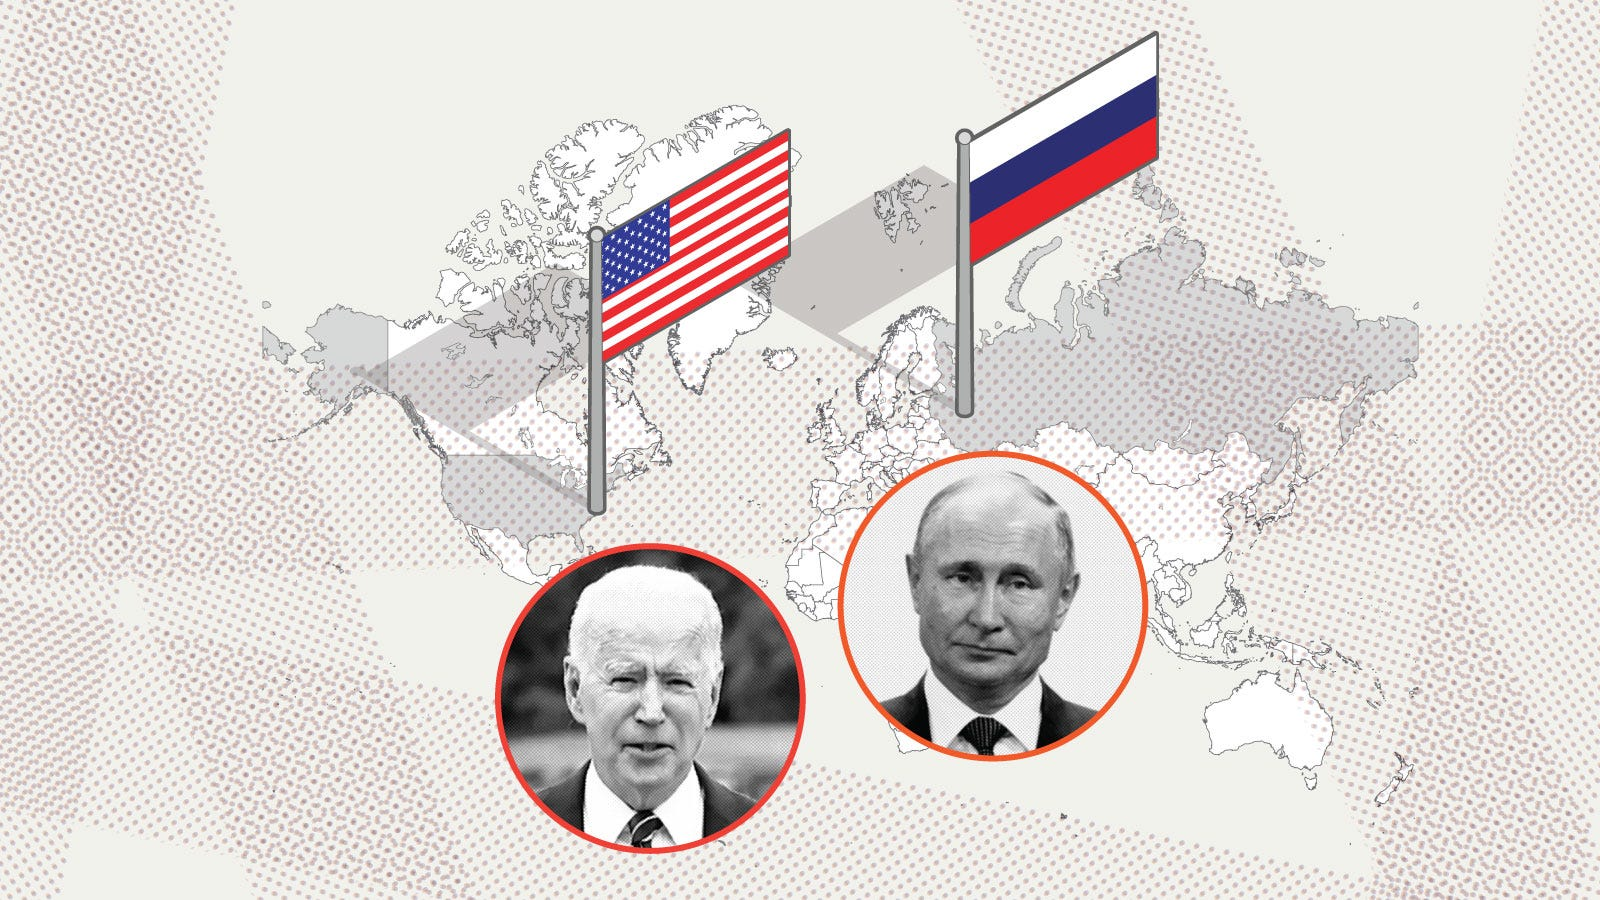 From Reagan and Gorbachev to Biden and Putin: 6 meetings show how the US-Russia relationship has evolved